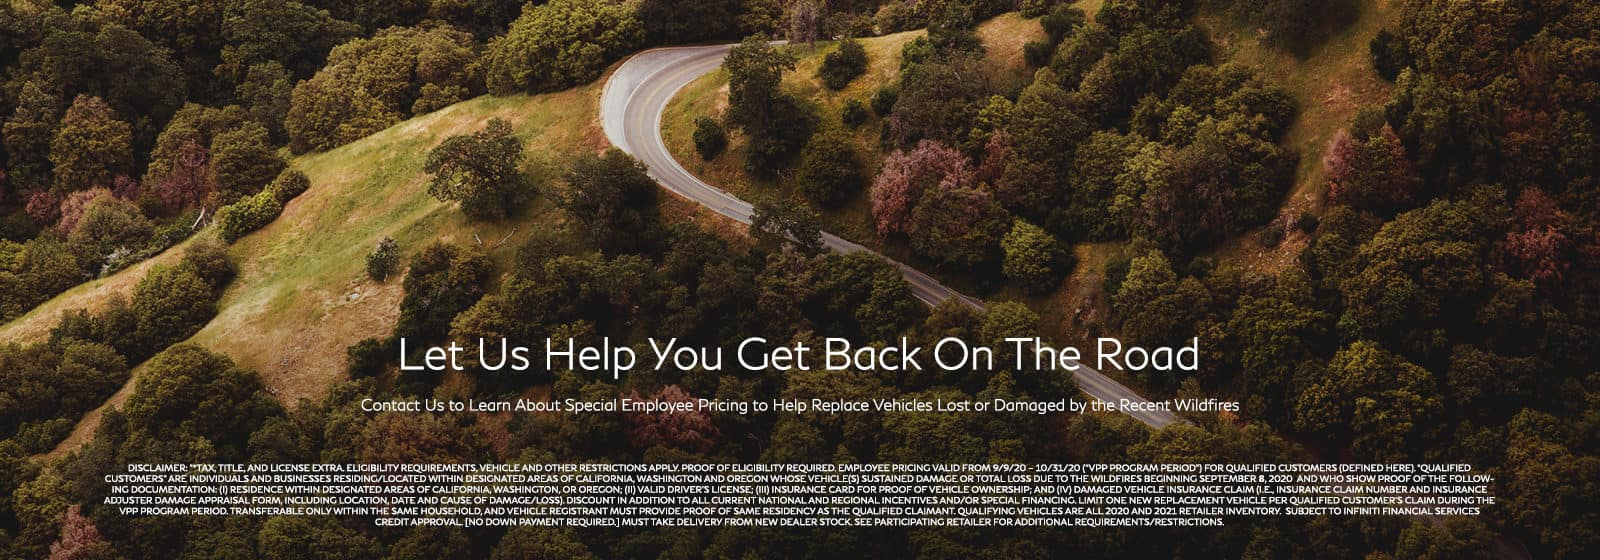 Let us help you get back on the road. Click to contact us.